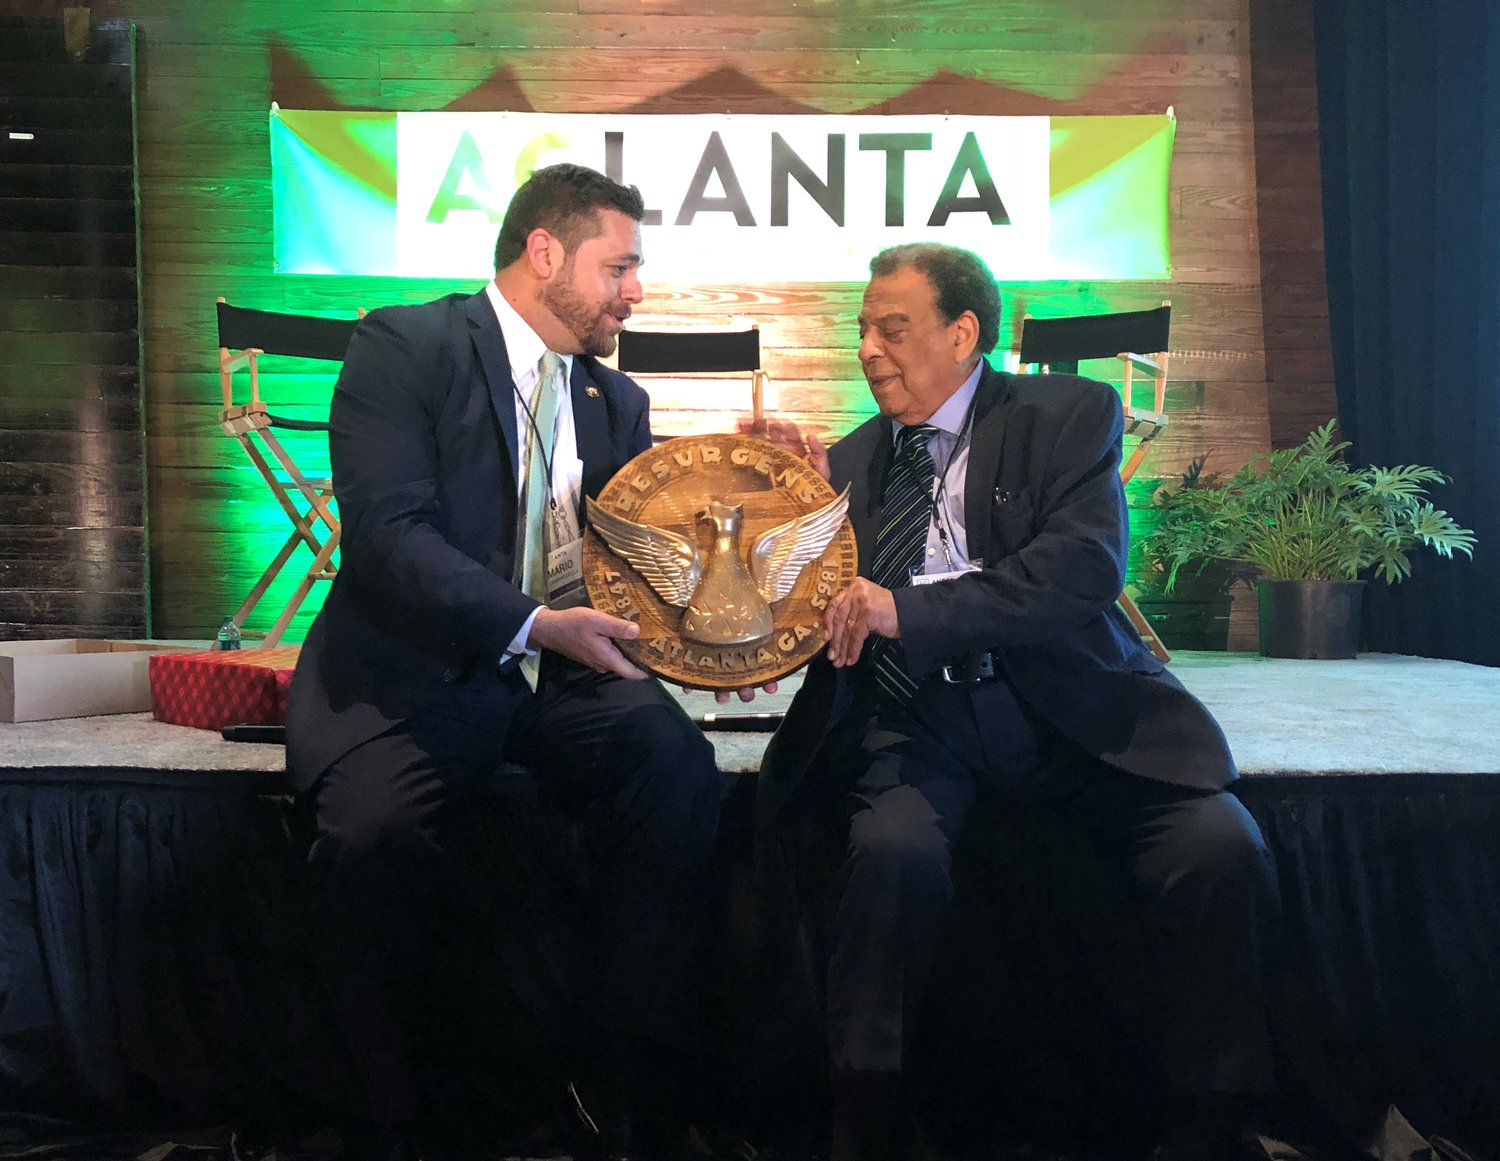 Atlanta's Director of Urban Agriculture, Mario Cambardella (left), presents the Seal of Atlanta to Ambassador Andrew Young (right), to honor his dedication to urban agriculture and resilience.